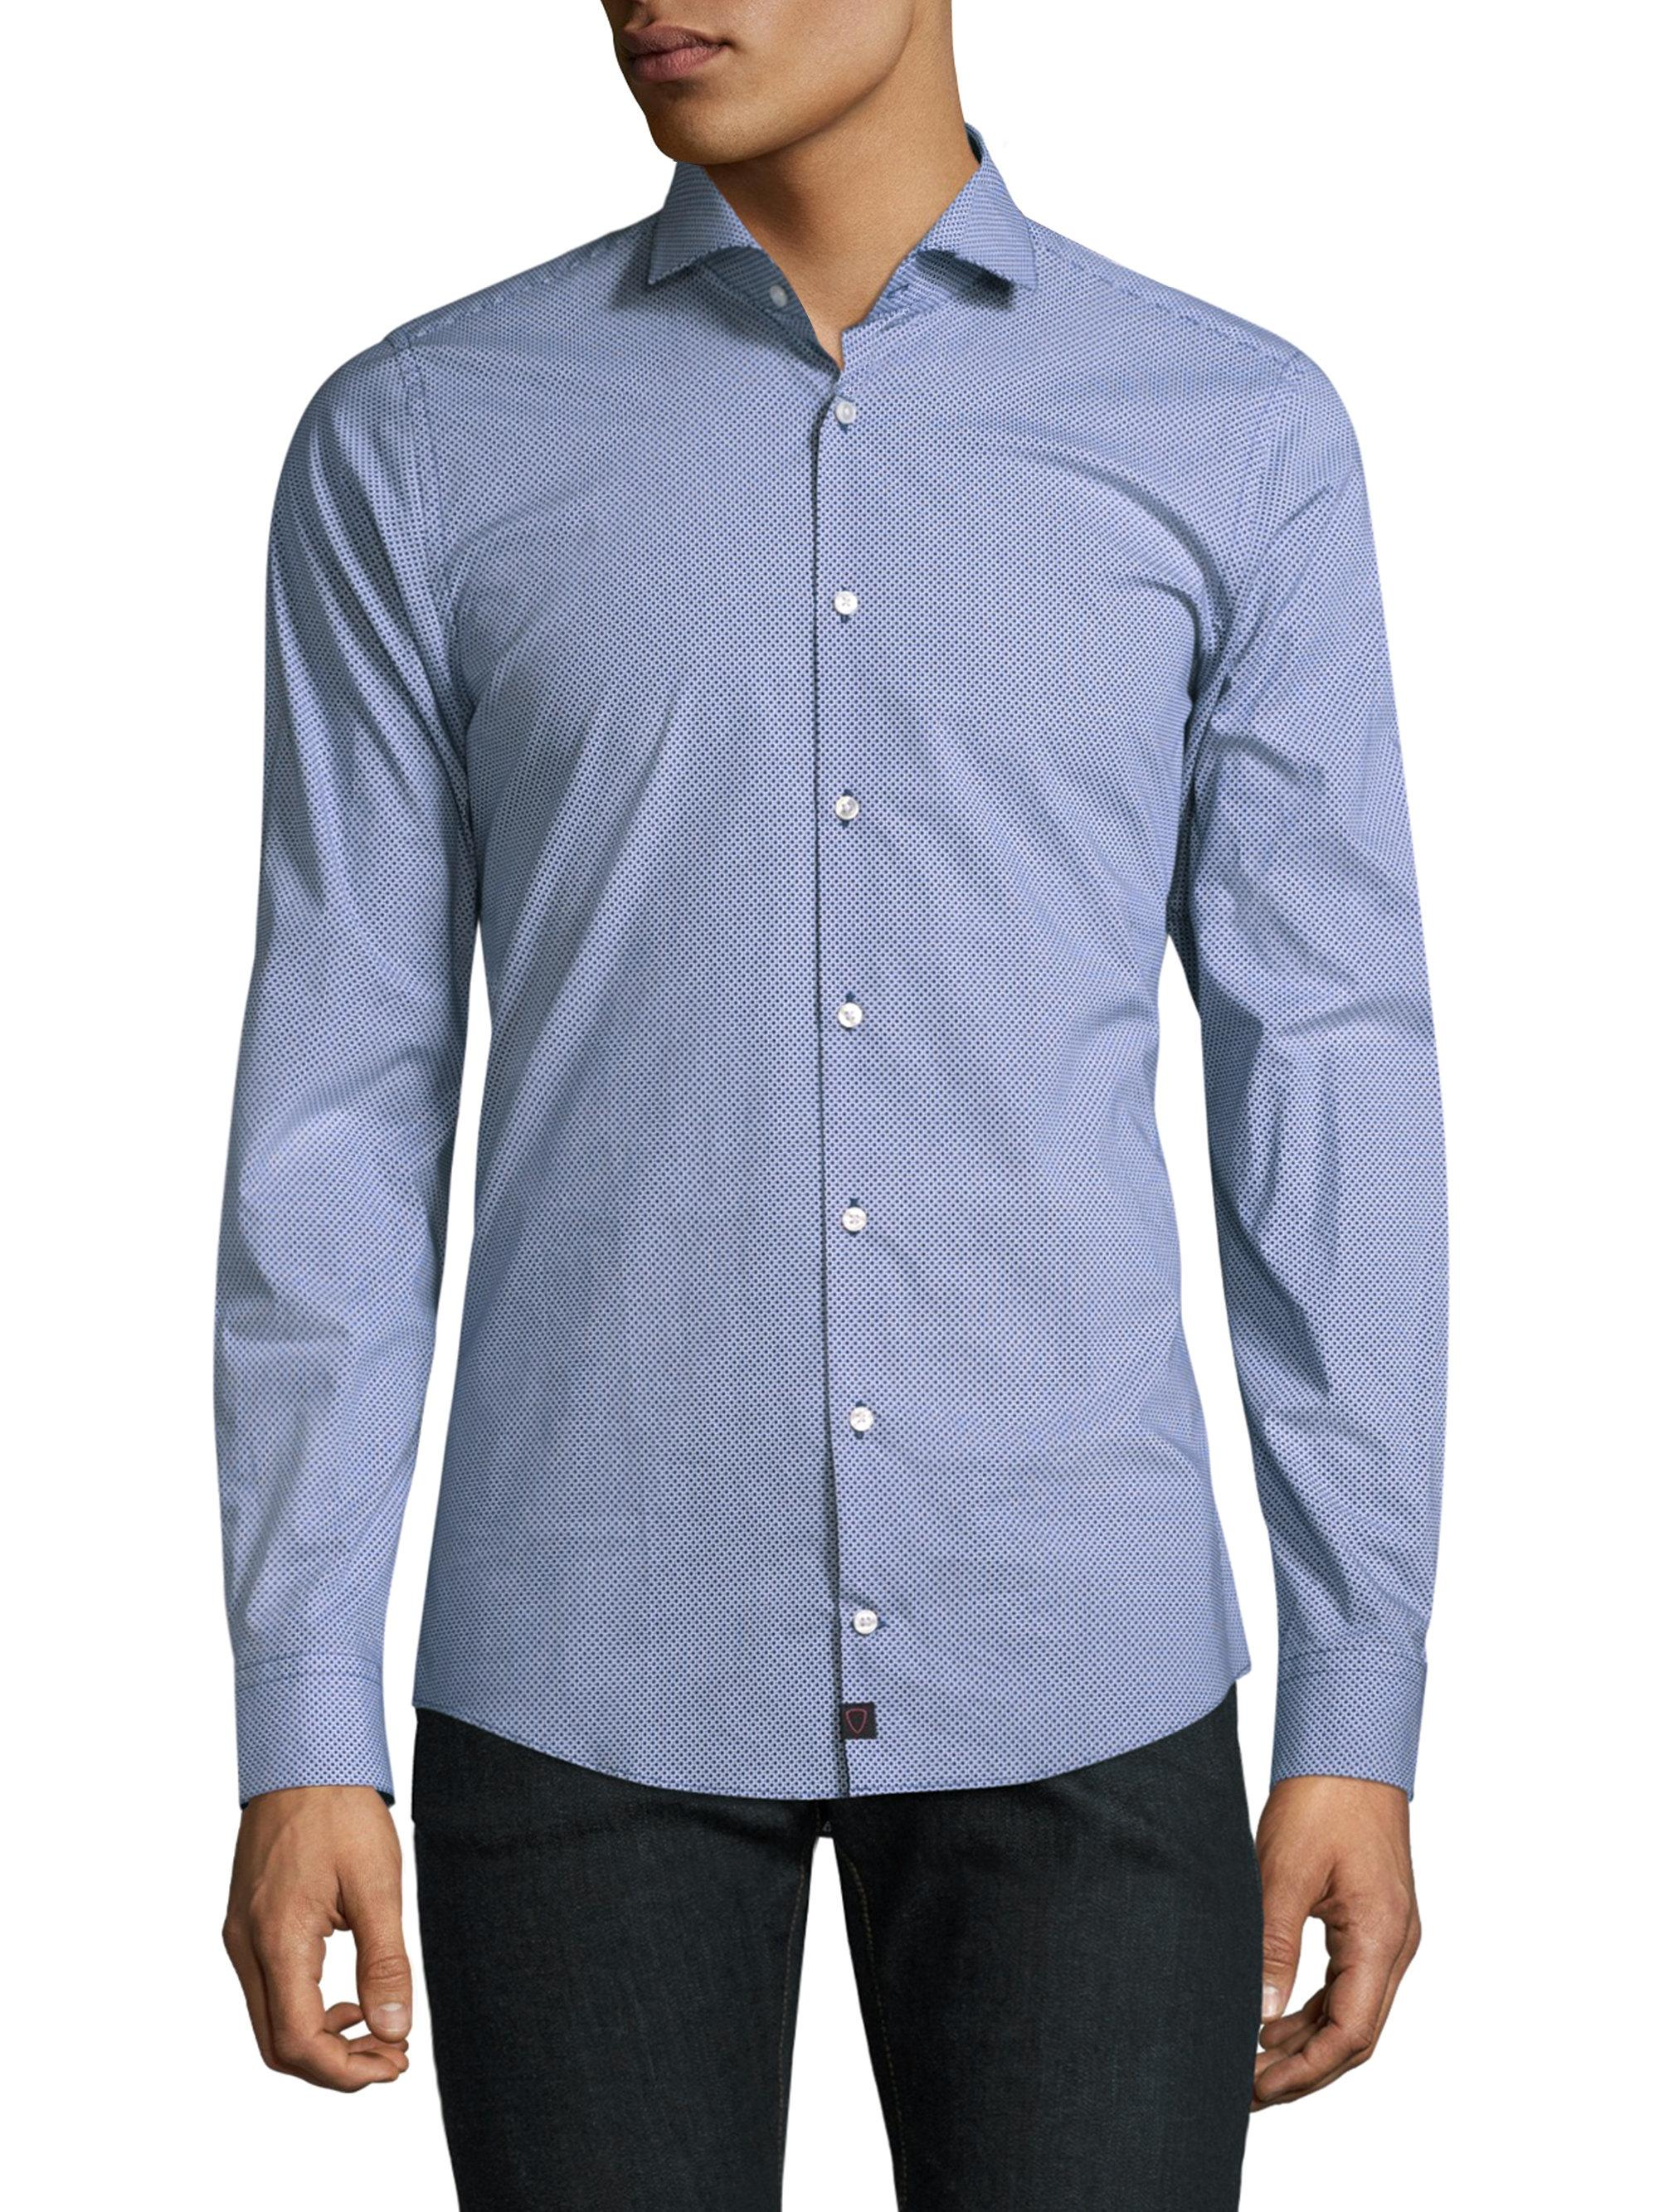 A dress shirt, button shirt, button-front, button-front shirt, or button-up shirt is a garment with a collar and a full-length opening at the front, which is fastened using buttons or shirt studs.A button-down or button-up shirt is a dress shirt which has a button-down collar – a collar having the ends fastened to the shirt with buttons.. Dress shirts are normally made from woven cloth, and.